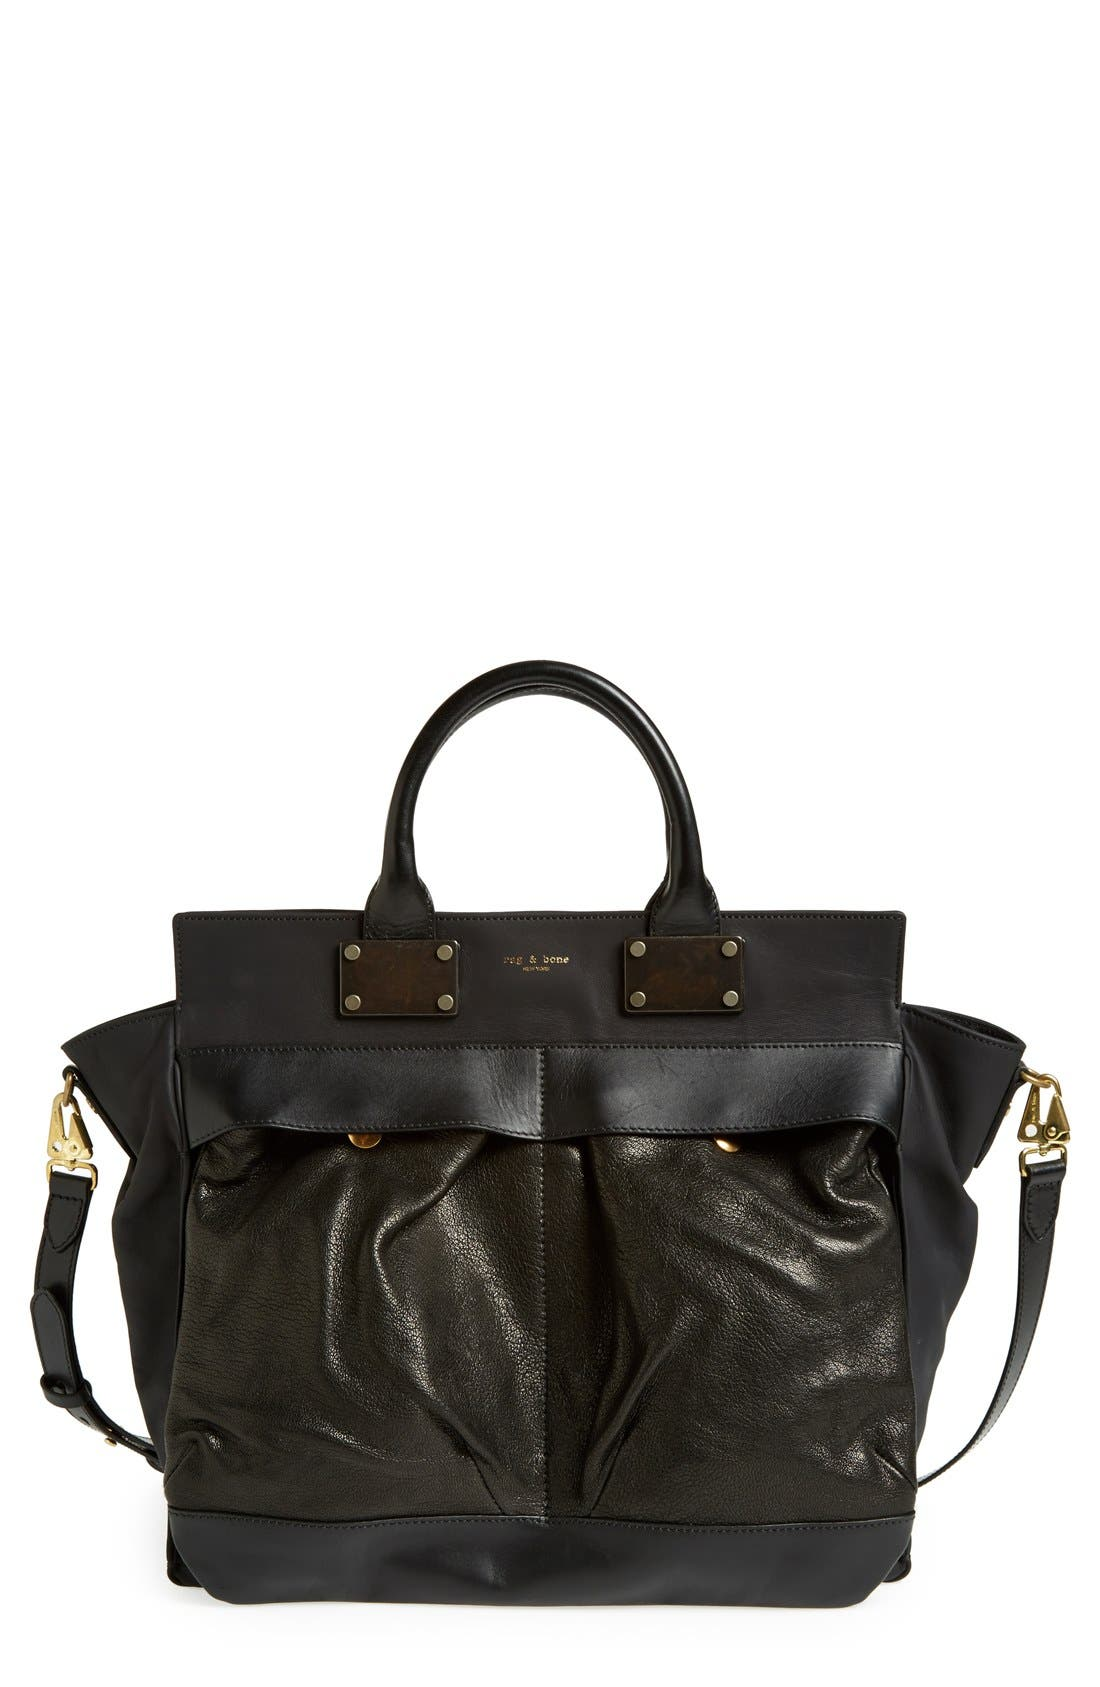 Alternate Image 1 Selected - rag & bone 'Large Pilot' Satchel